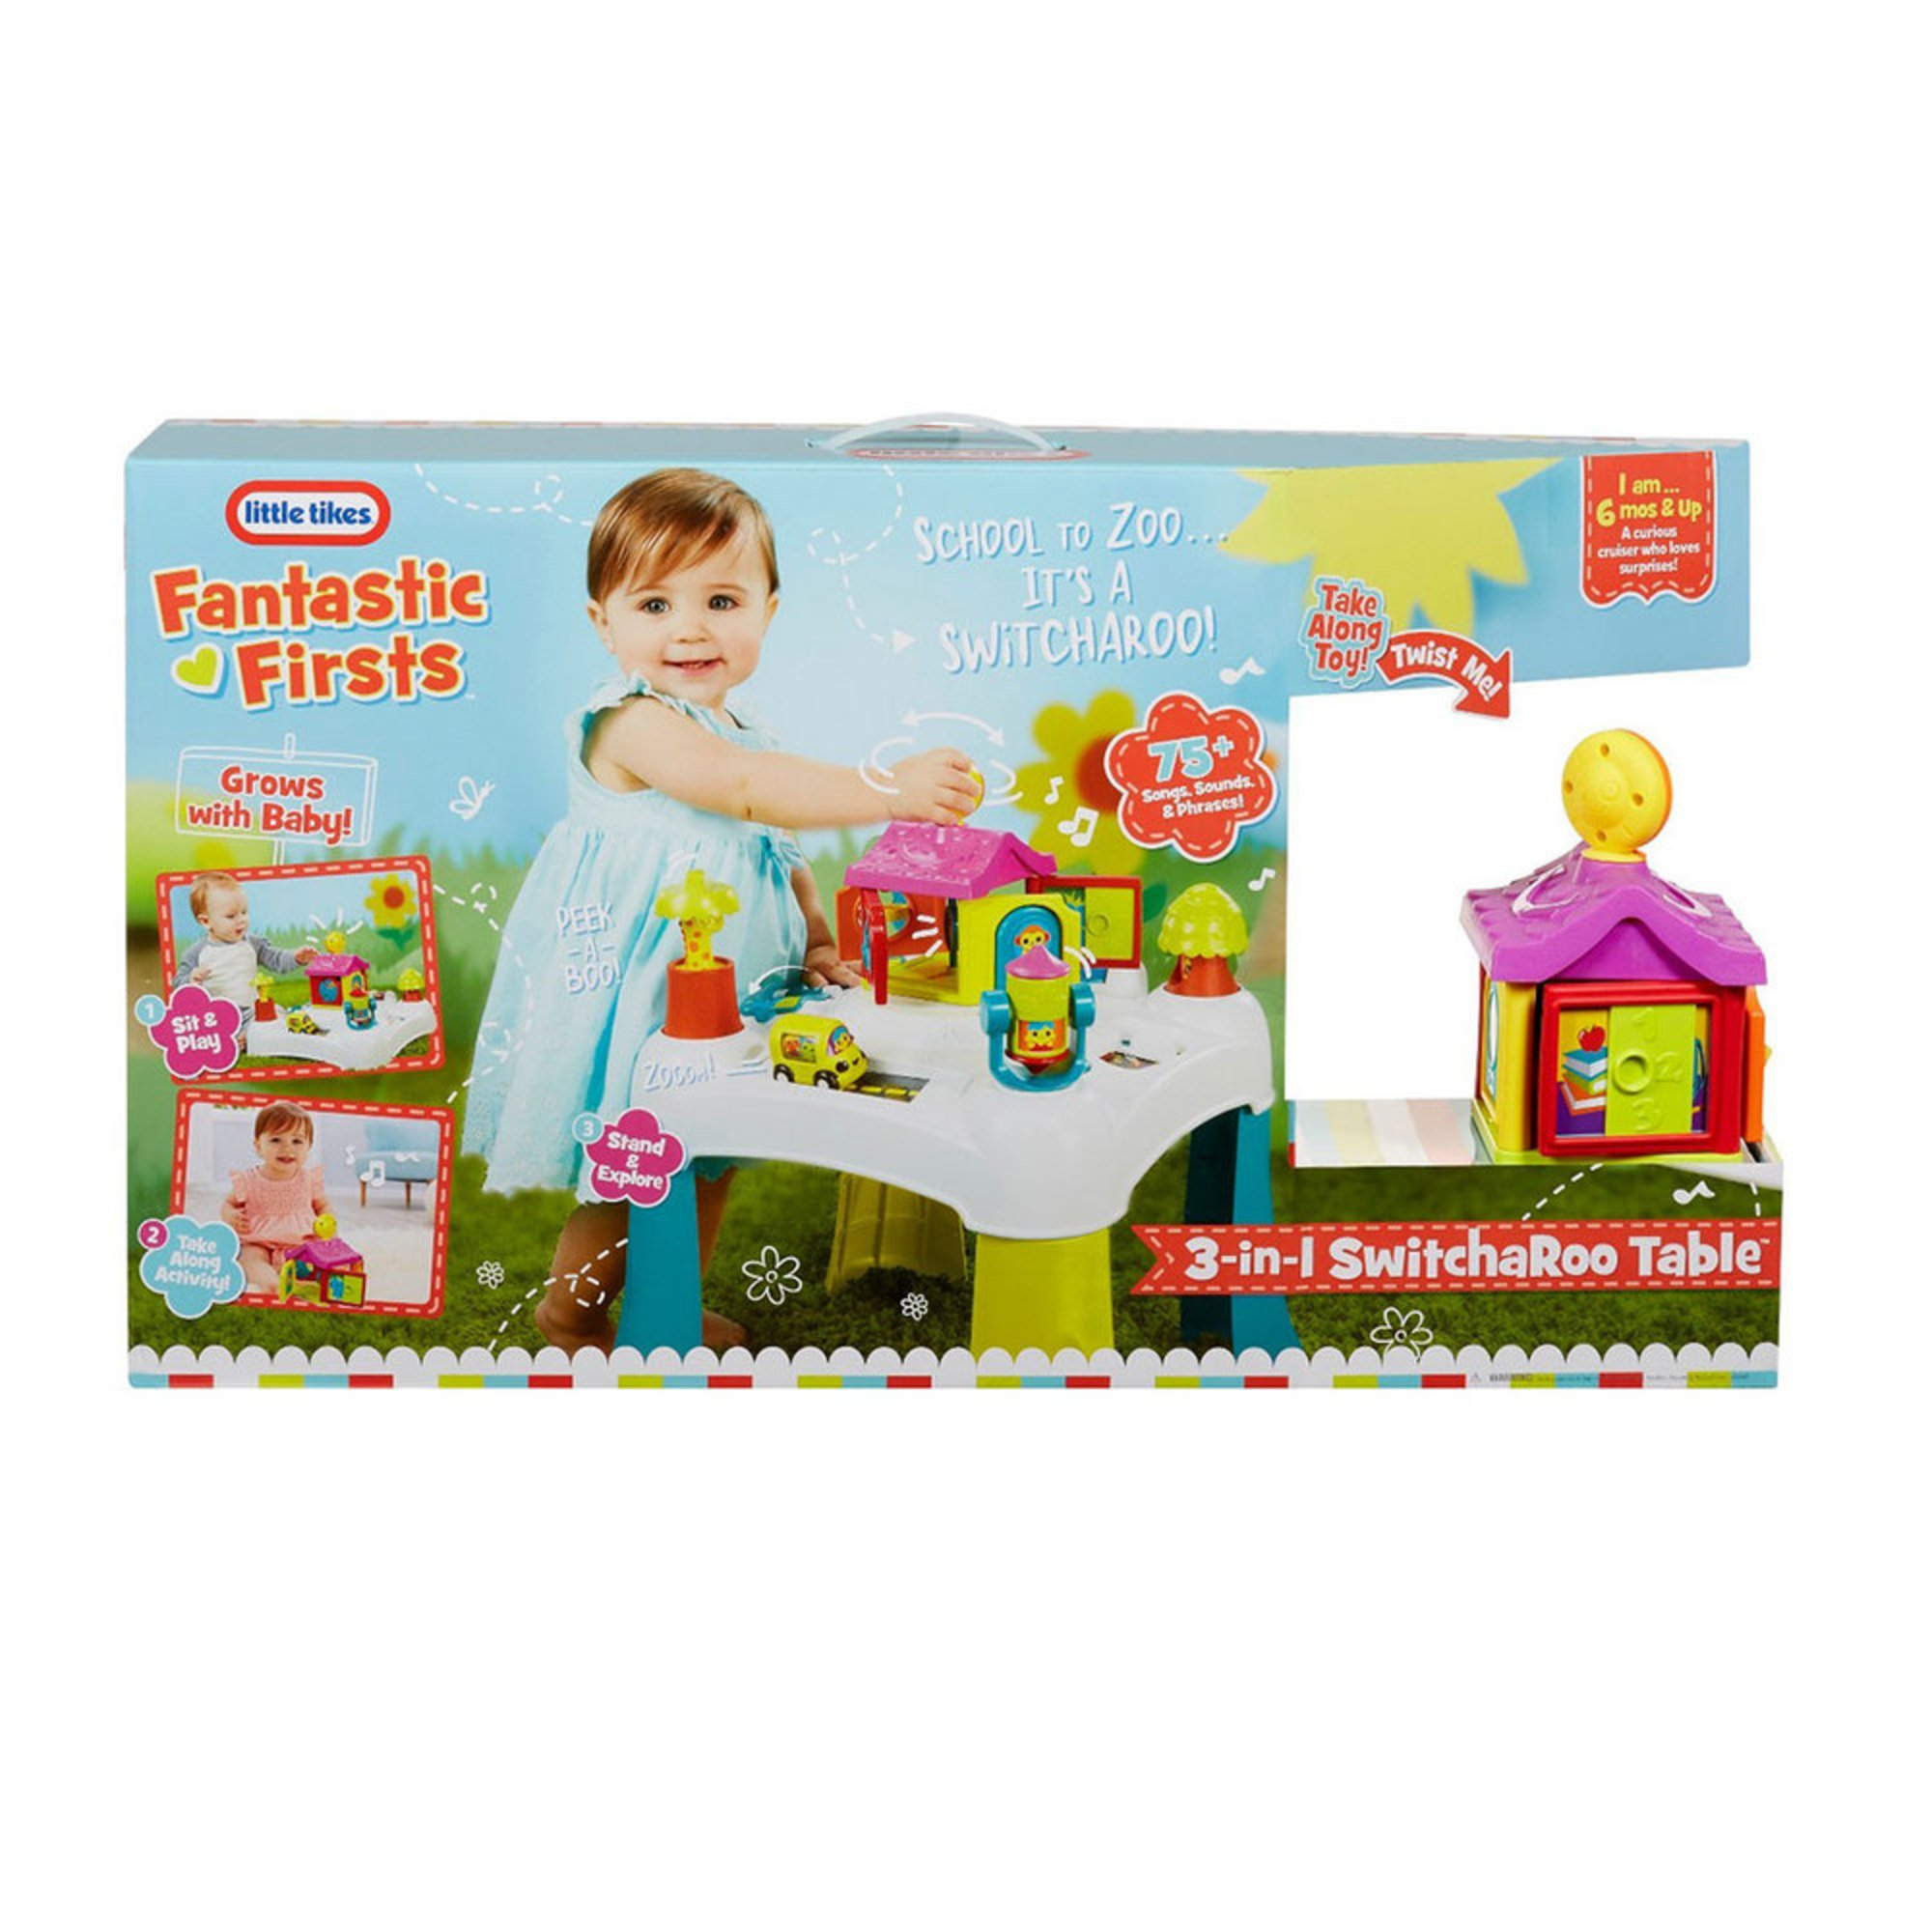 000 3-in-1 Switcharoo Table | Early Learning Toys Baby, Kids \u0026